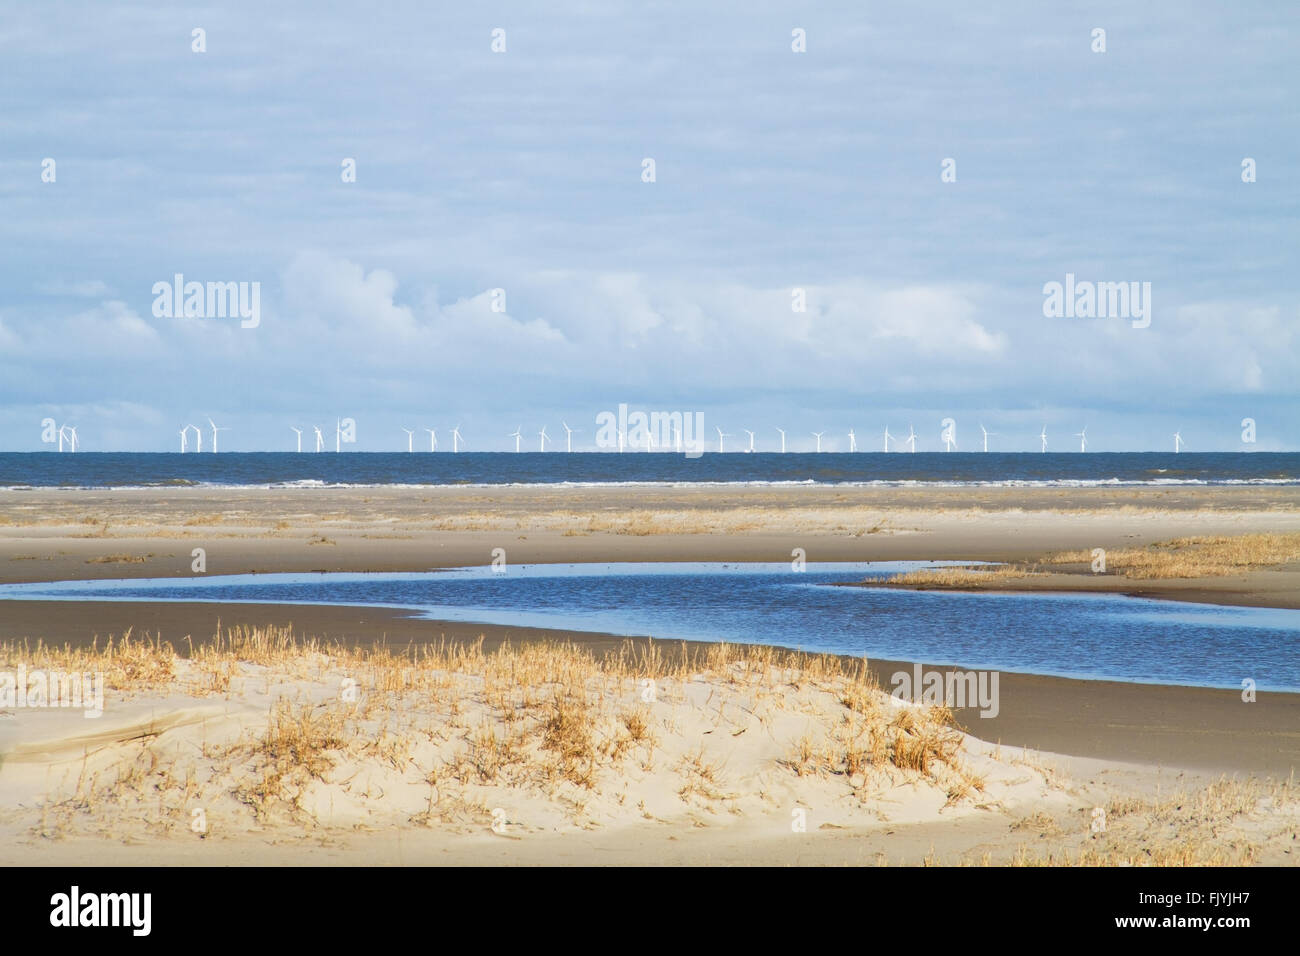 Offshore windpark in the north sea view from the beach of the Dutch island Schiermonnikoog - Stock Image